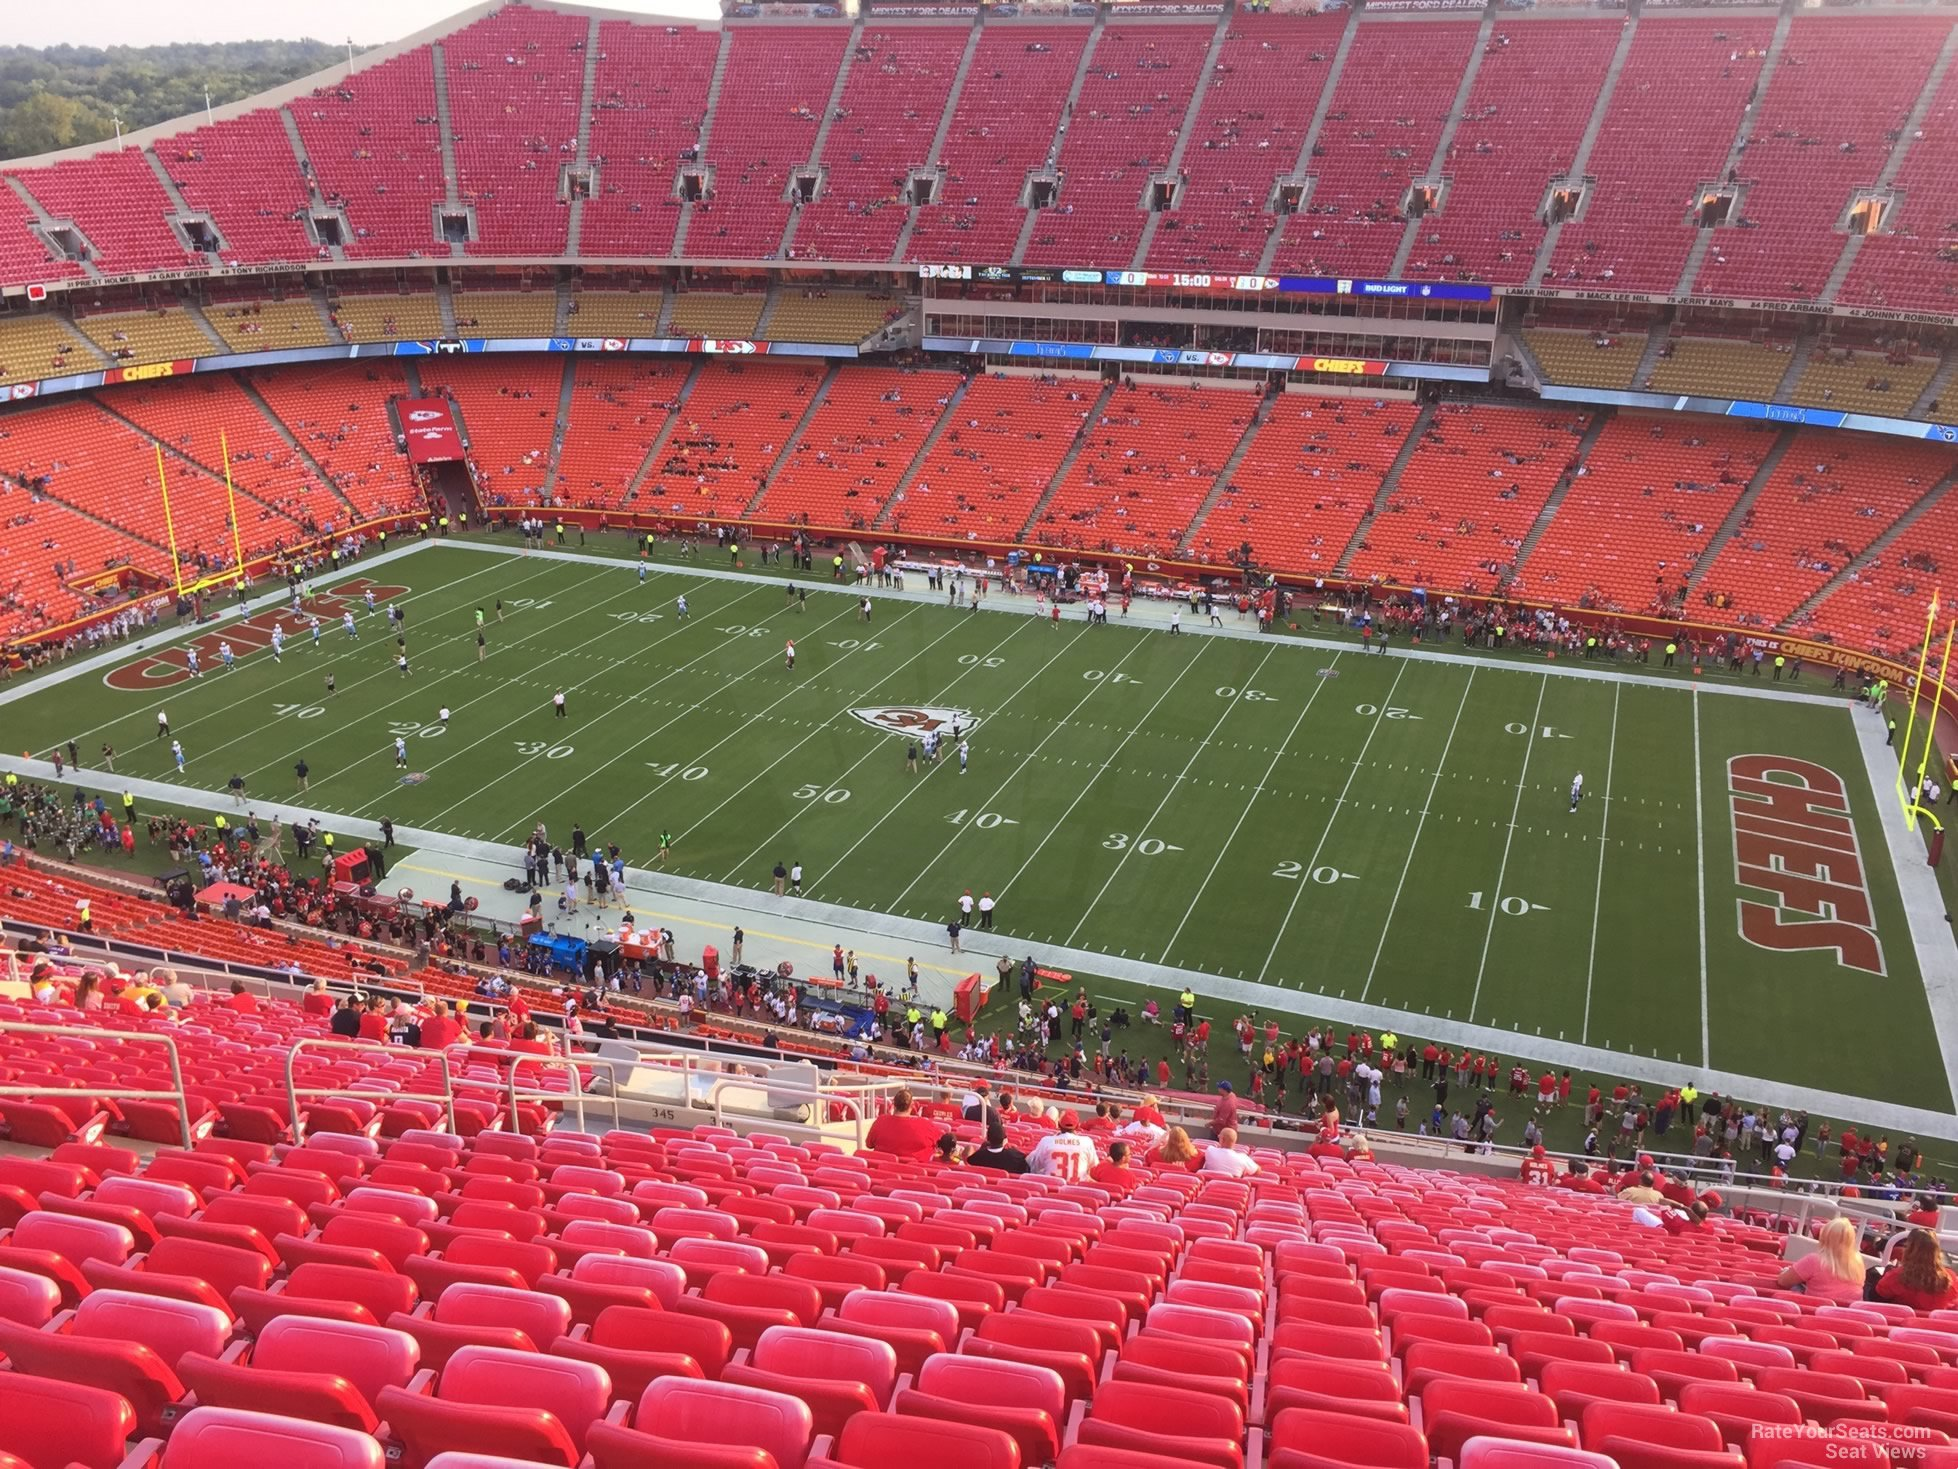 Section 344 seat view